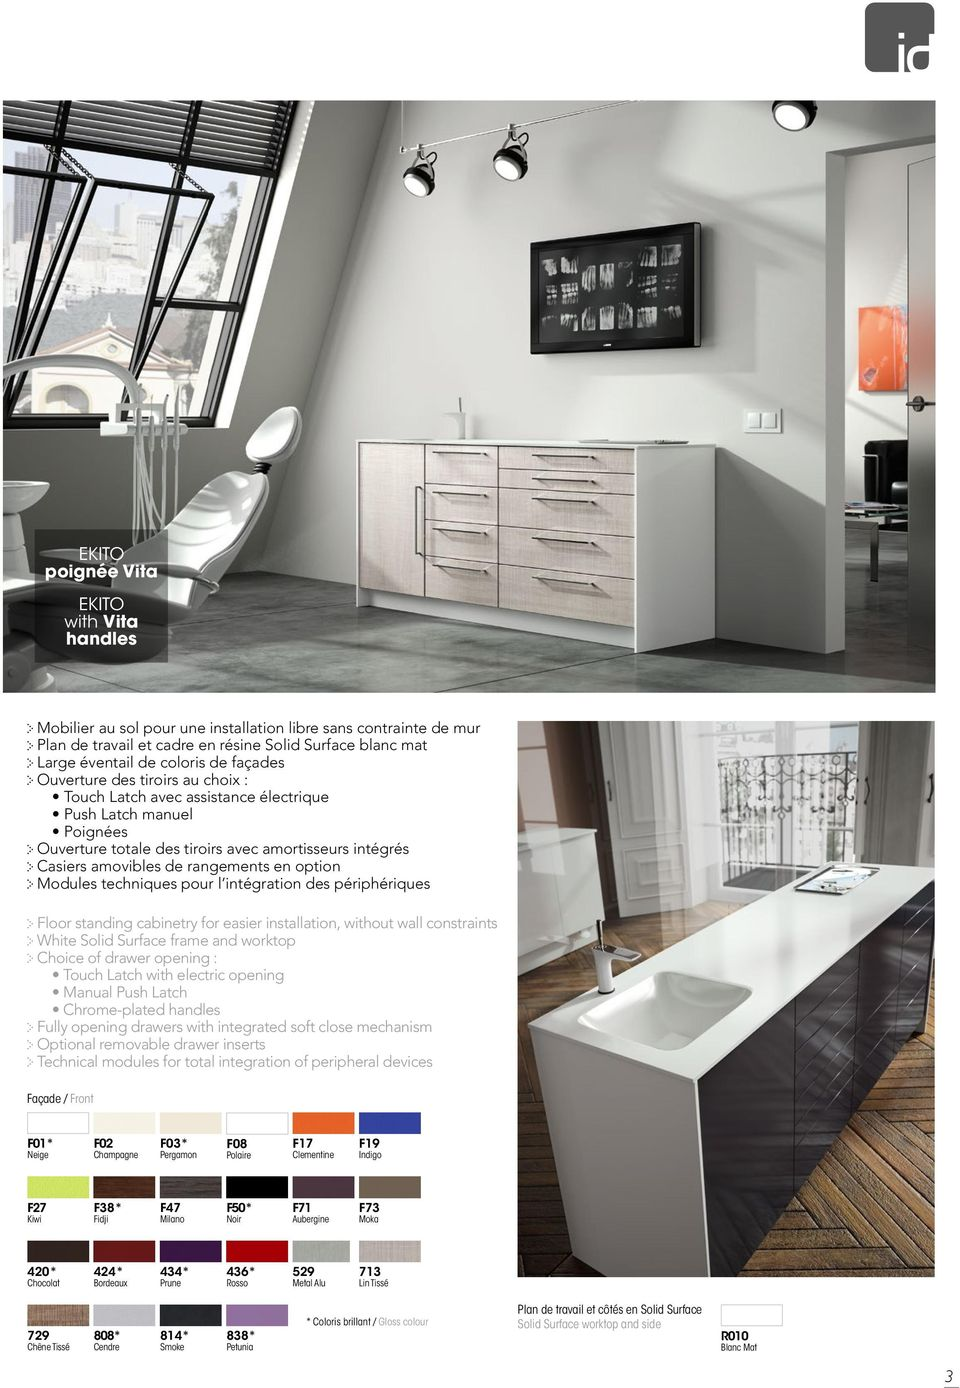 option Modules techniques pour l intégration des périphériques Floor standing cabinetry for easier installation, without wall constraints White Solid Surface frame and worktop Choice of drawer